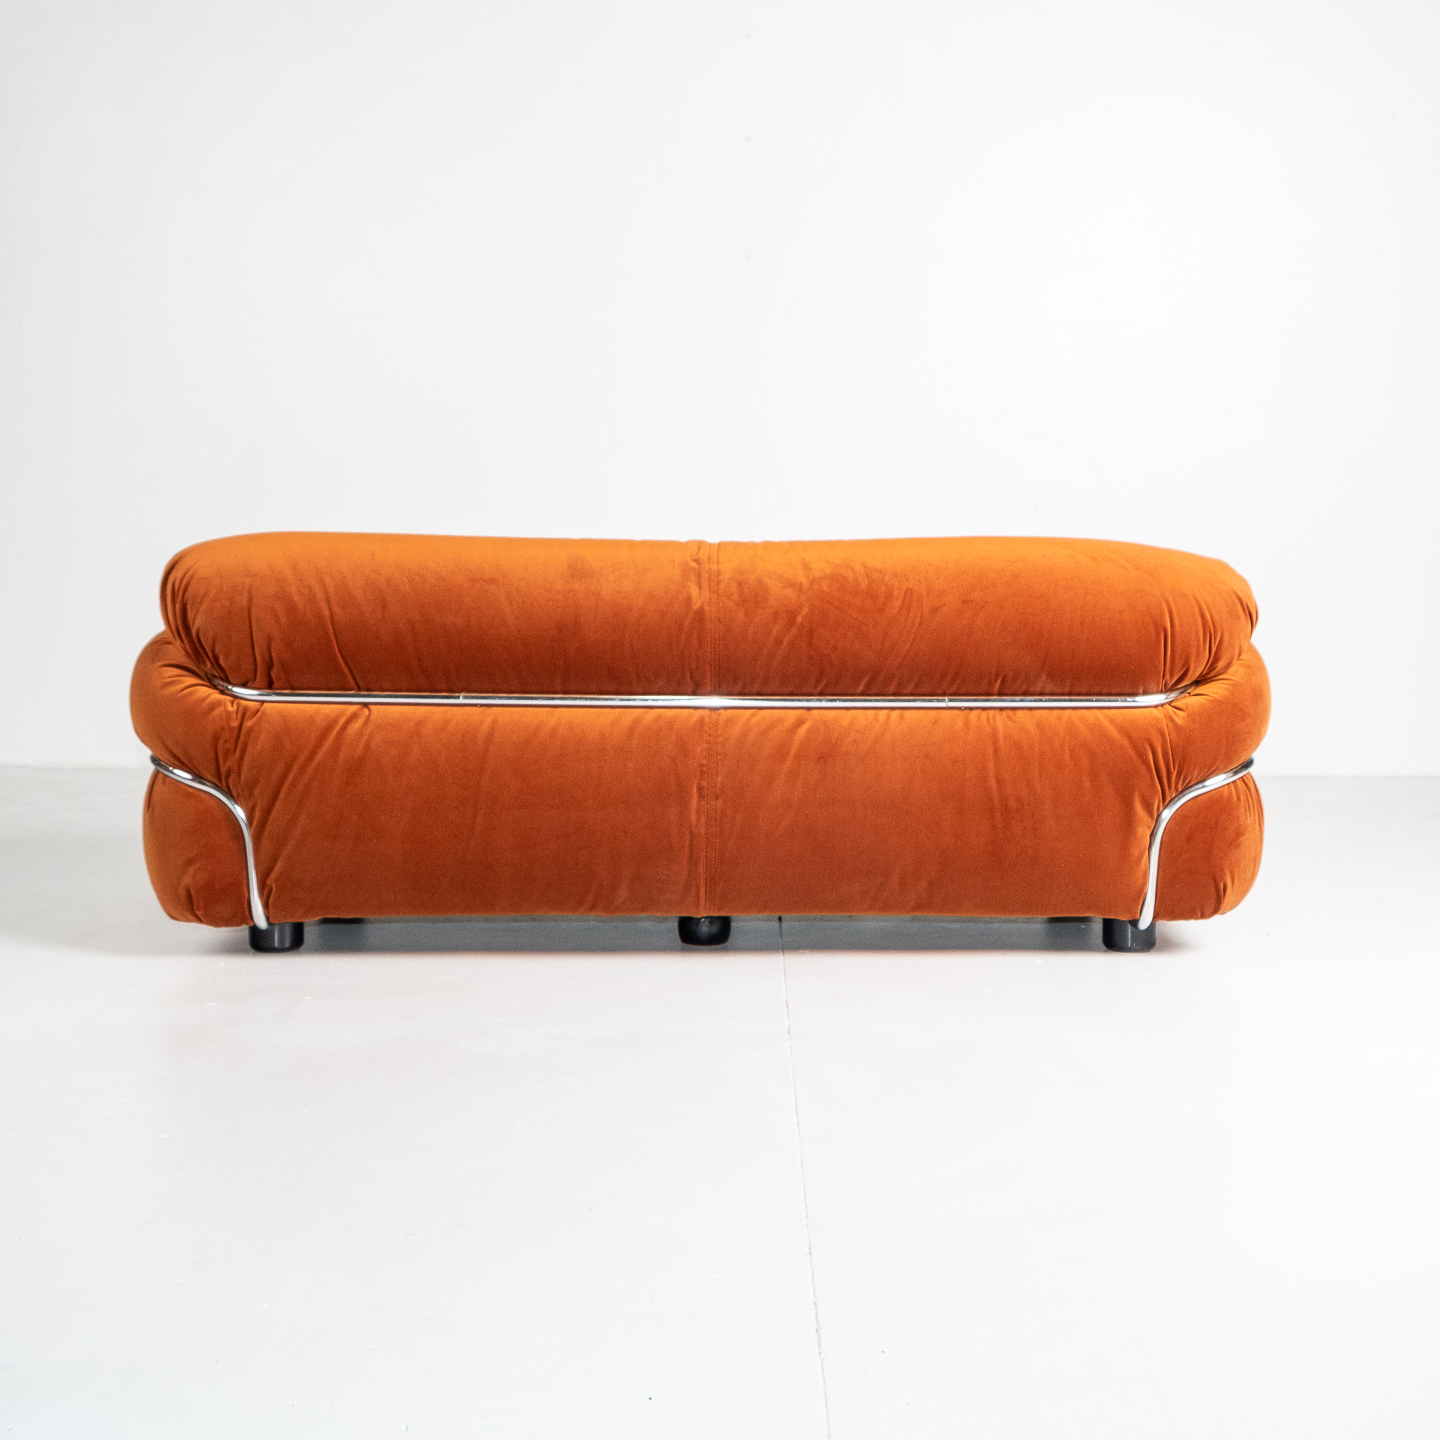 Model 595 Sesann Sofa By Gianfranco Frattini For Cassina, 1970s, Italy 202